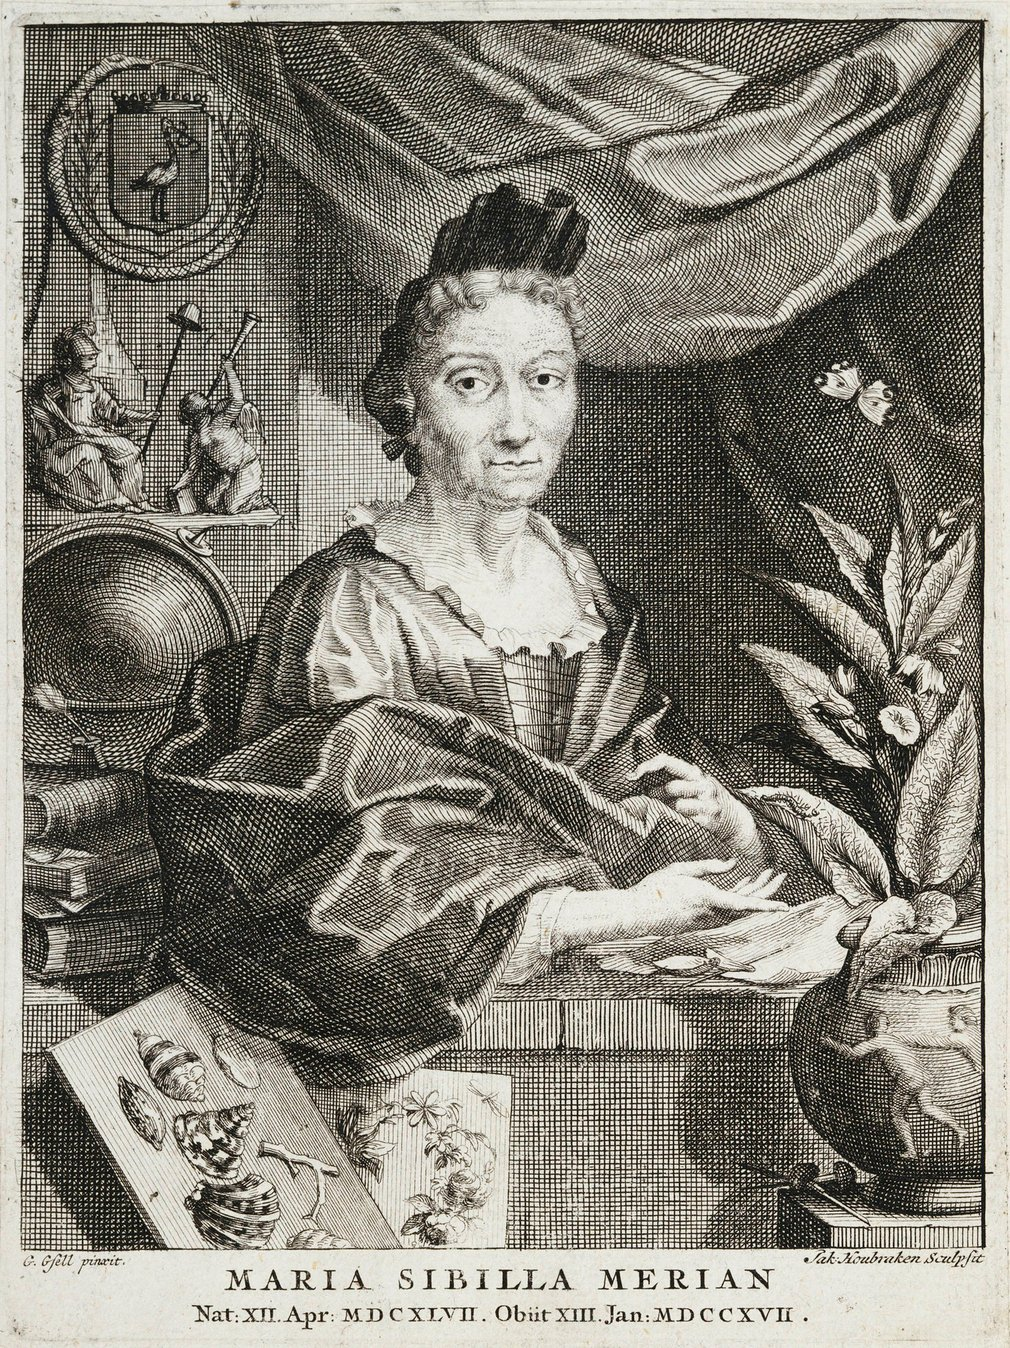 Print depicting half-length portrait of middle-aged lady with headress, facing 3/4 to right. Arms rest on ledge gesturing towards potted plant. To left in front of ledge images of sea shells and flowers. Curtain draped behind.